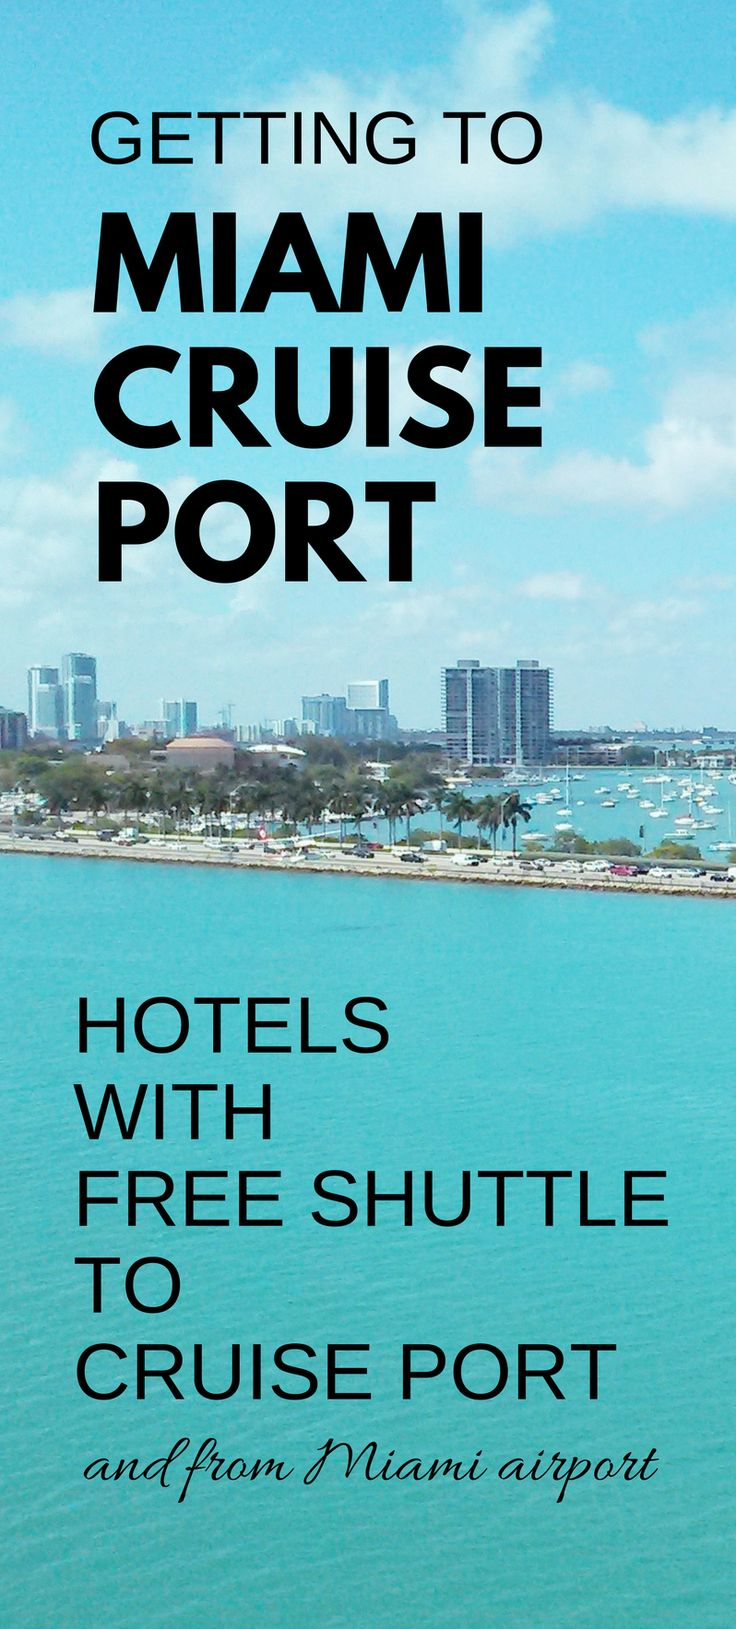 Hotels Near Miami Port For Cruises With Free Shuttle